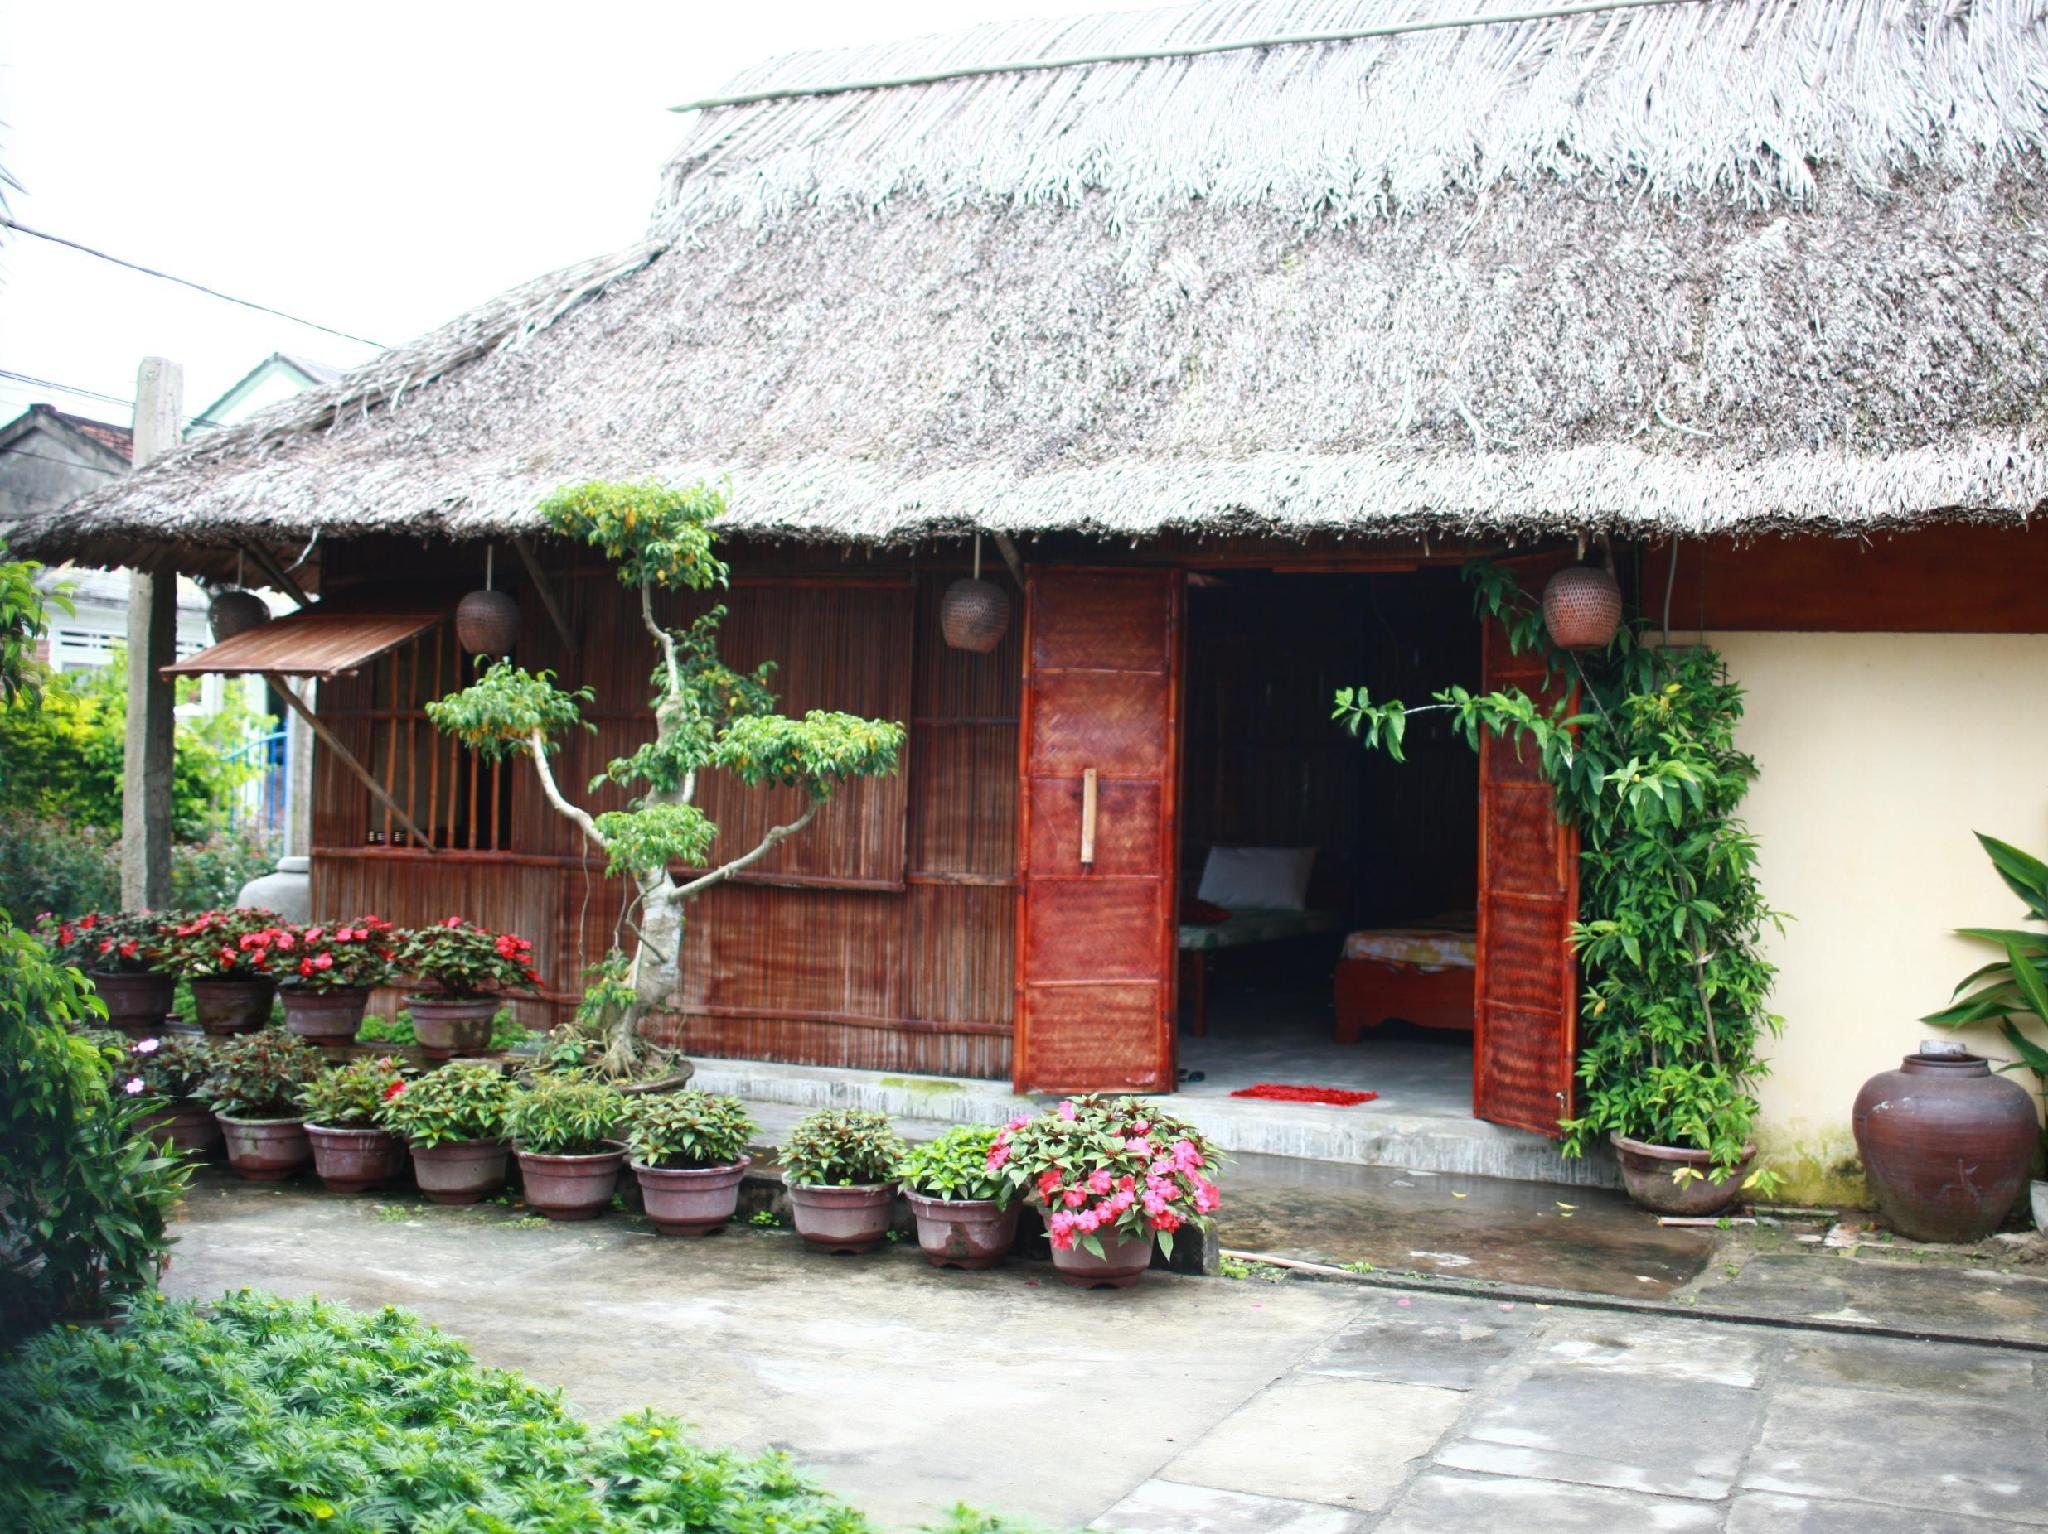 Petunia Garden Homestay and Hostel3